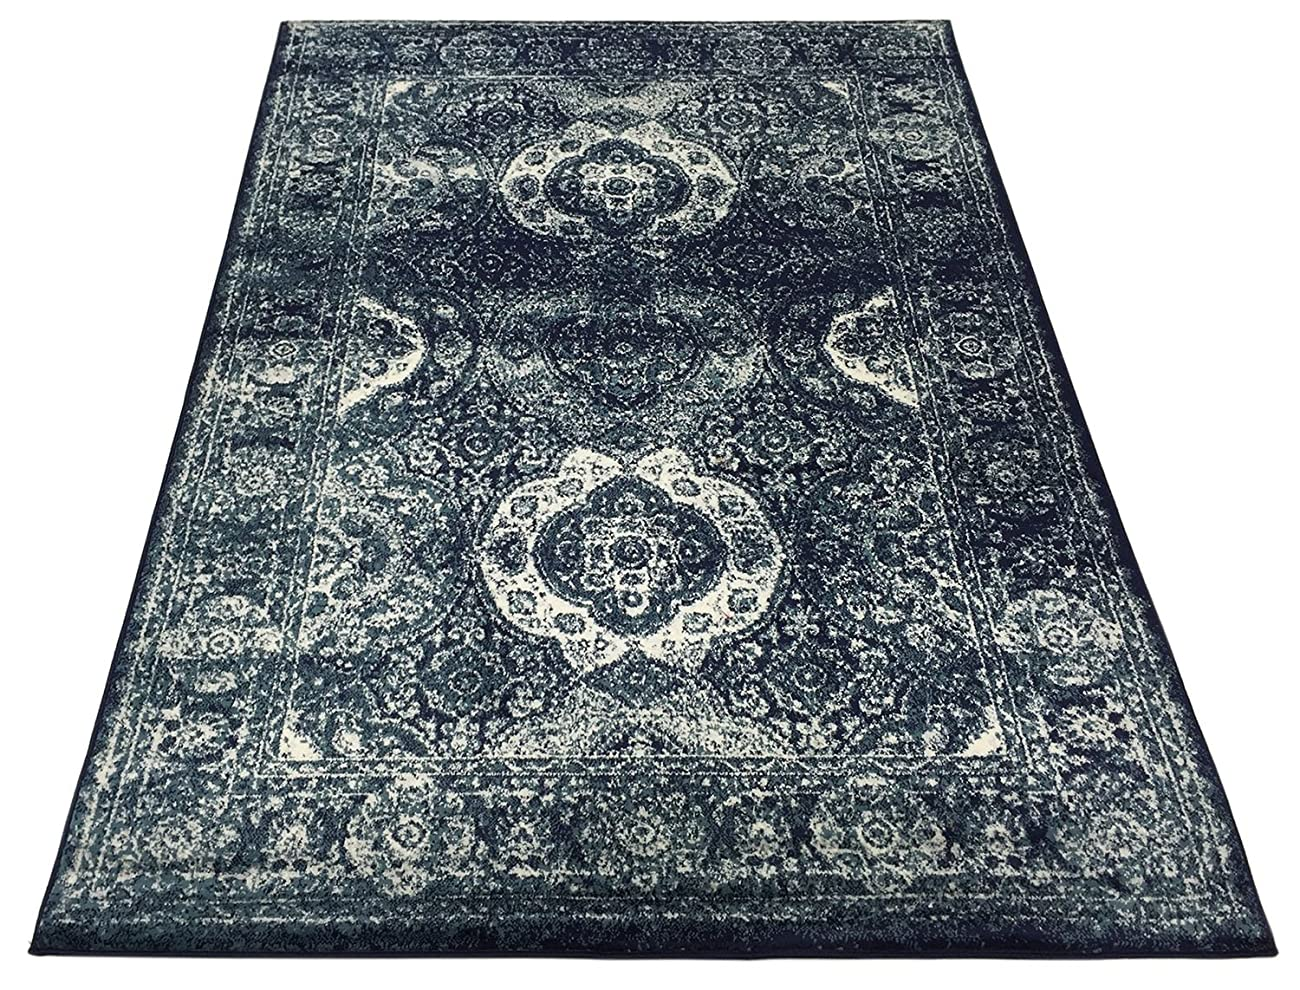 Studio Collection Vintage French Aubusson Design Contemporary Modern Area Rug Rugs 3 Different Color Options (Aubusson Navy Blue, 5 x 7) 5